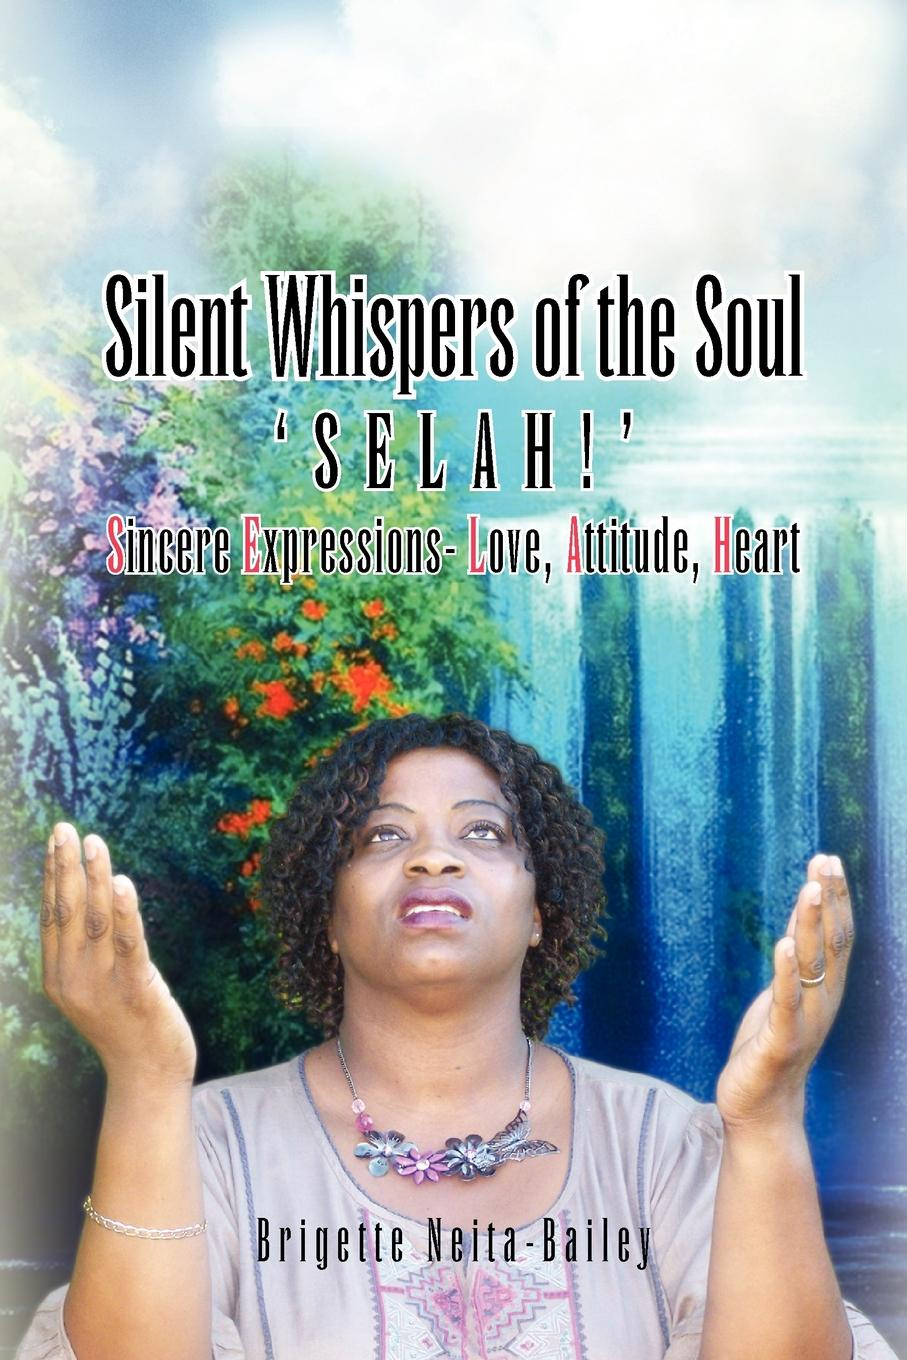 Brigette Neita-Bailey Silent Whispers of the Soul. SELAH!!! Sincere Expressions -Love, Attitude, Heart! недорого